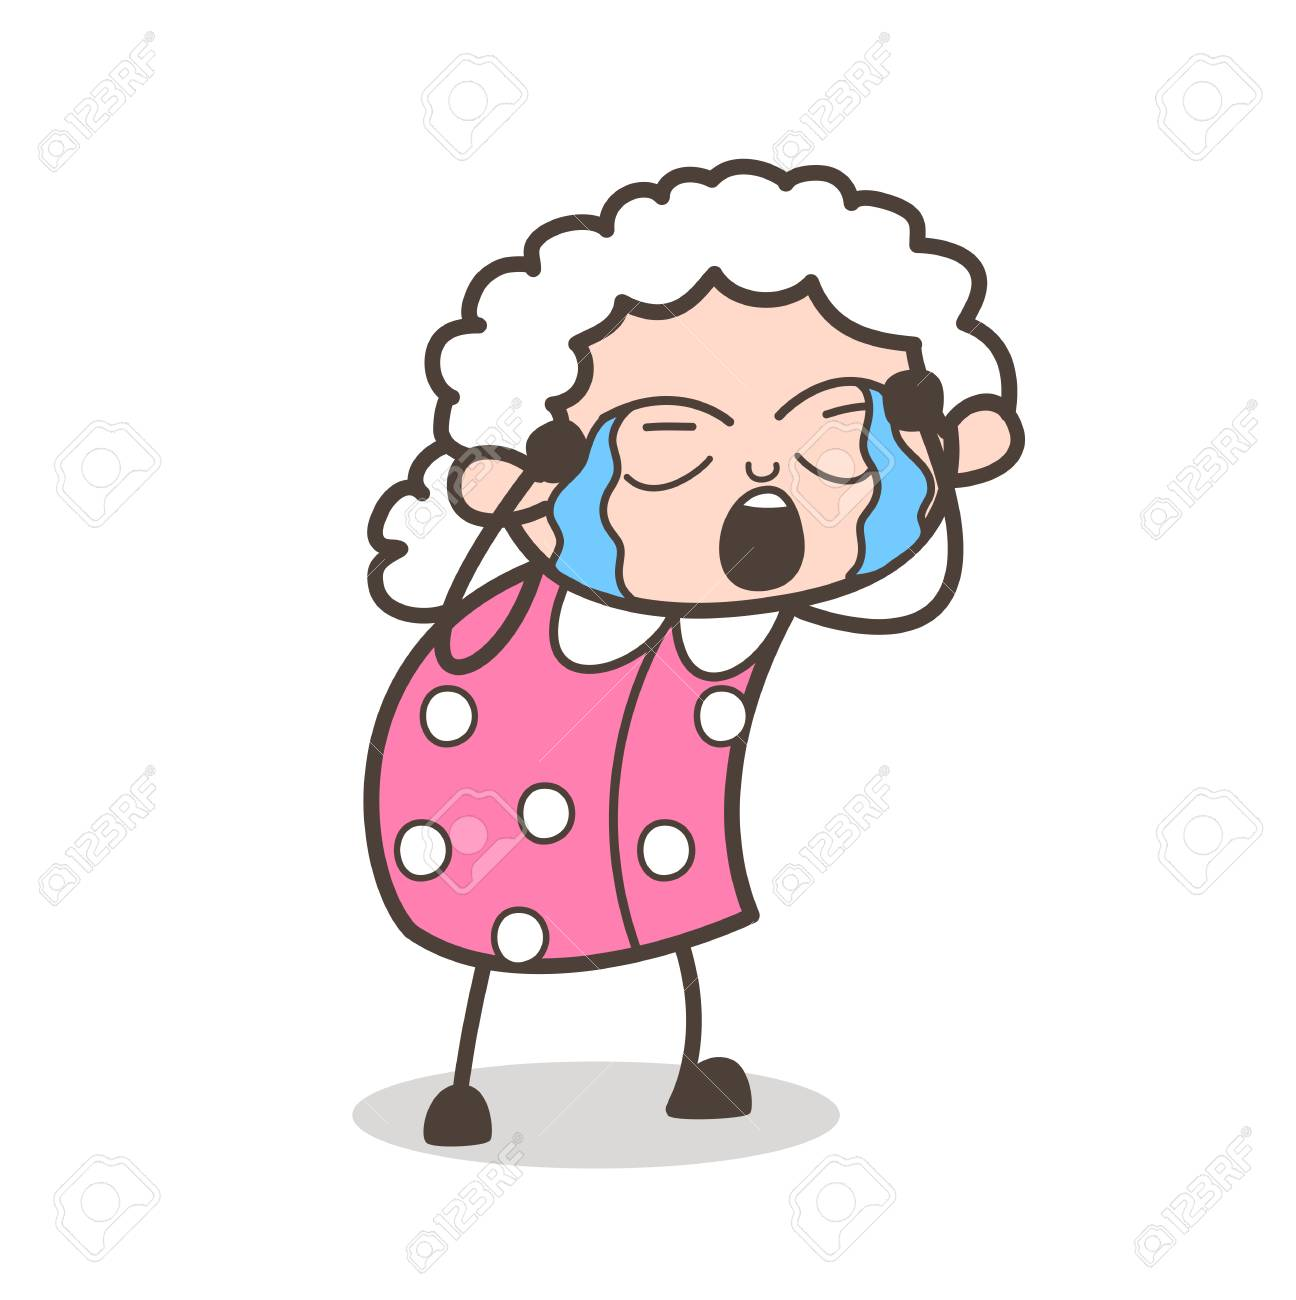 Crying Lady Drawing | Free download best Crying Lady ...